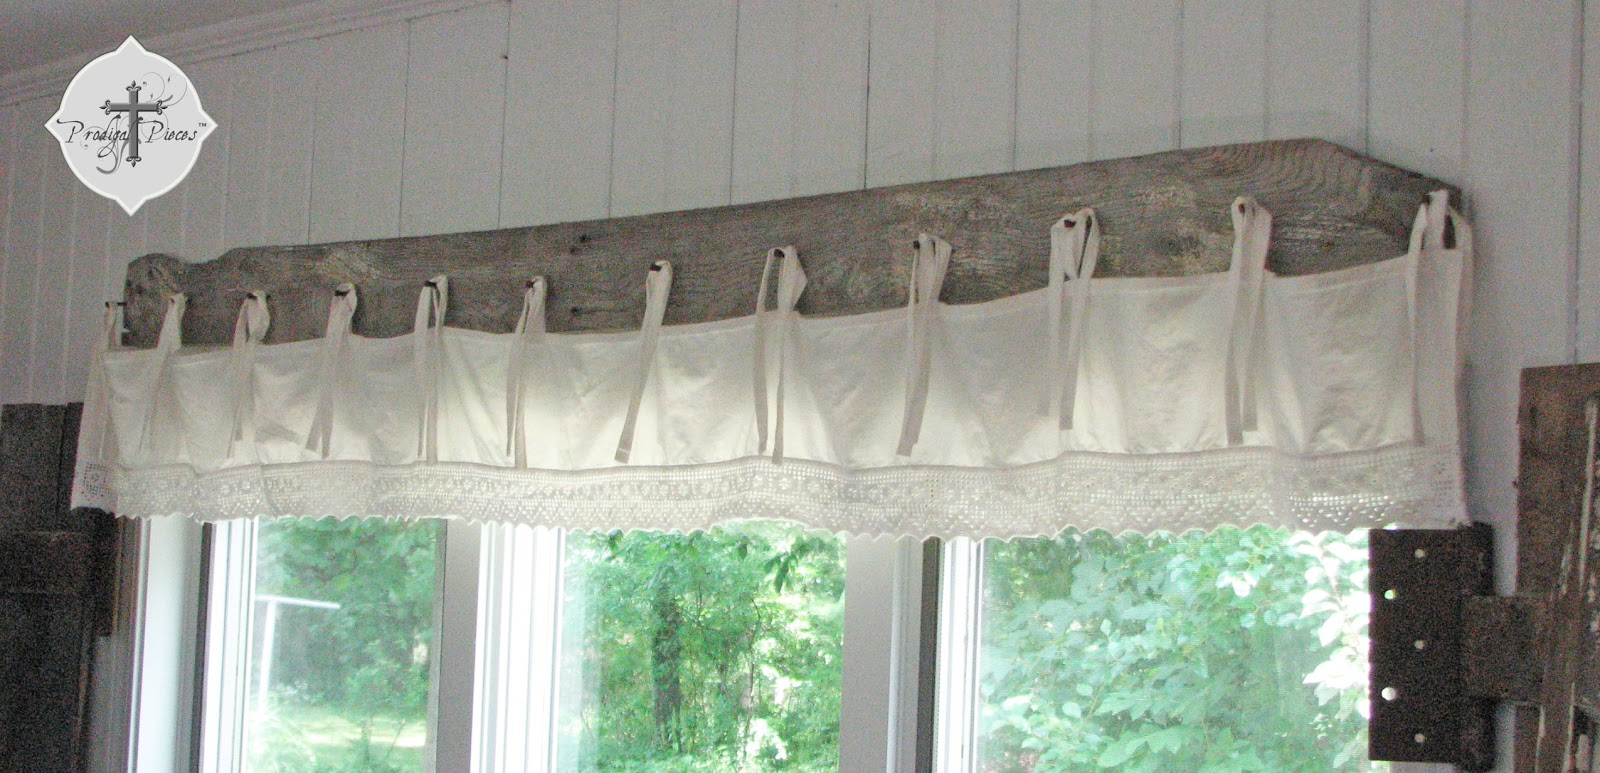 Diy Barn Wood Bedskirt Valance Prodigal Pieces